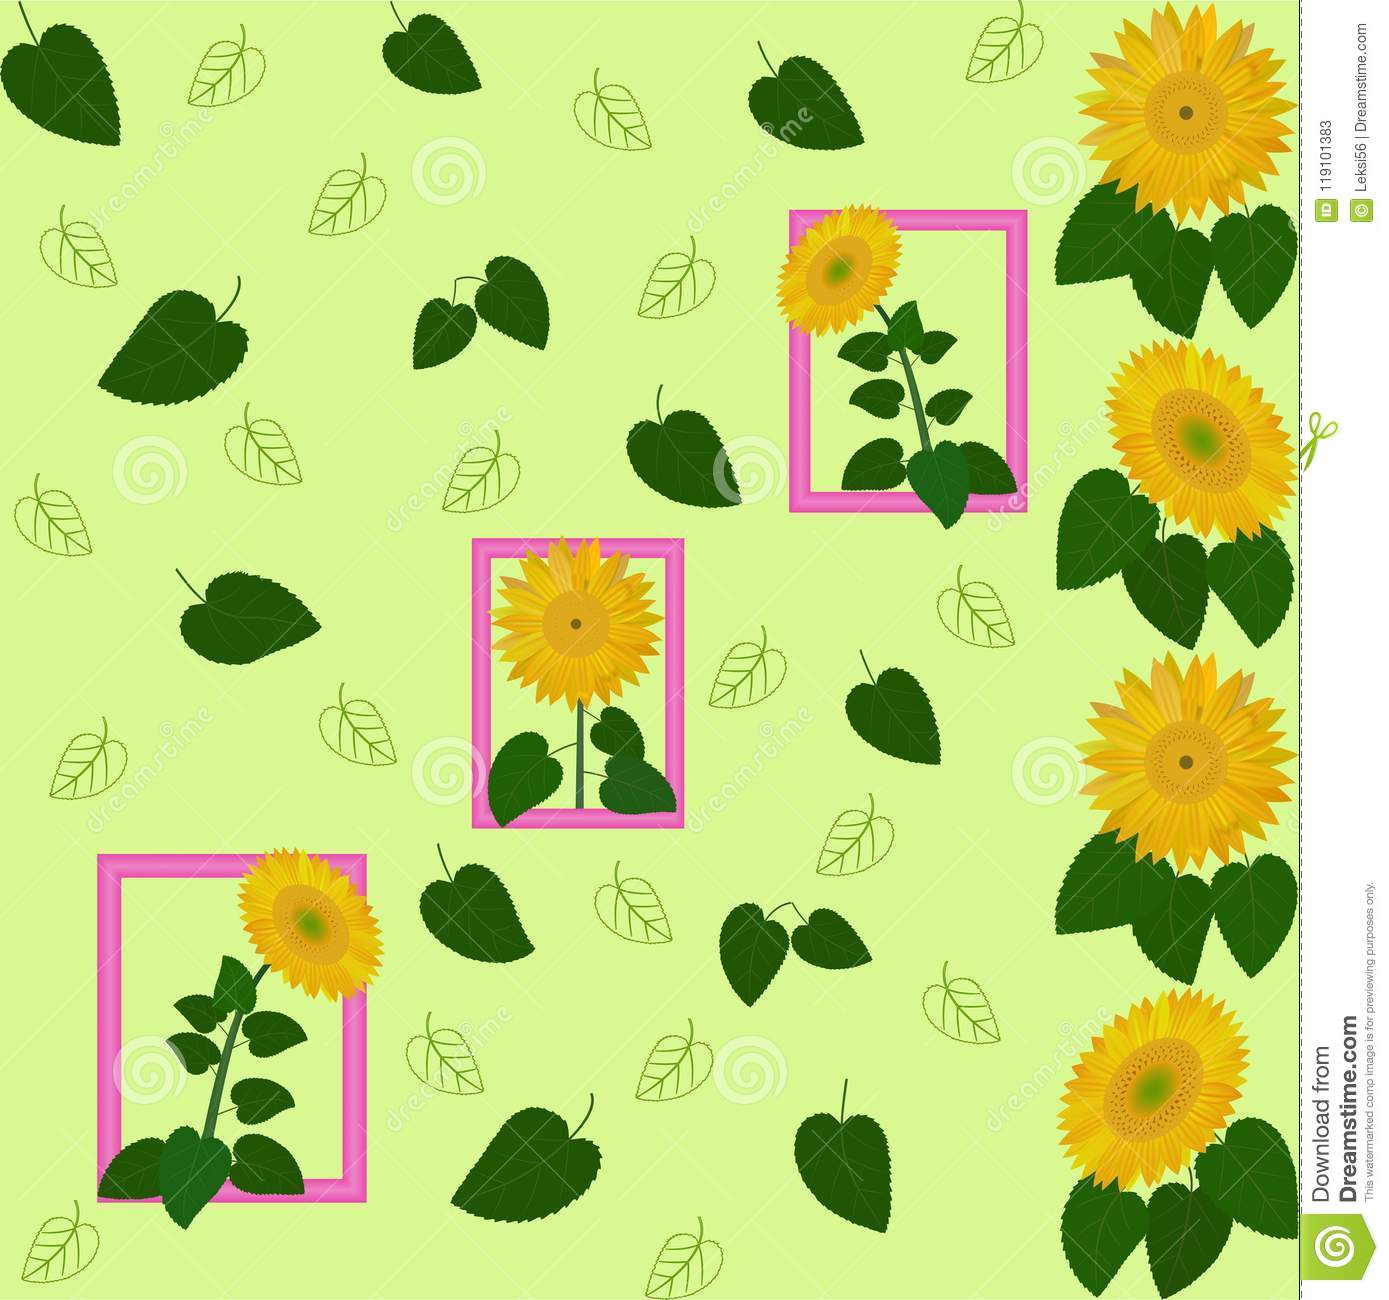 pattern green leaf sunflower yellow abstraction flora wallpaper